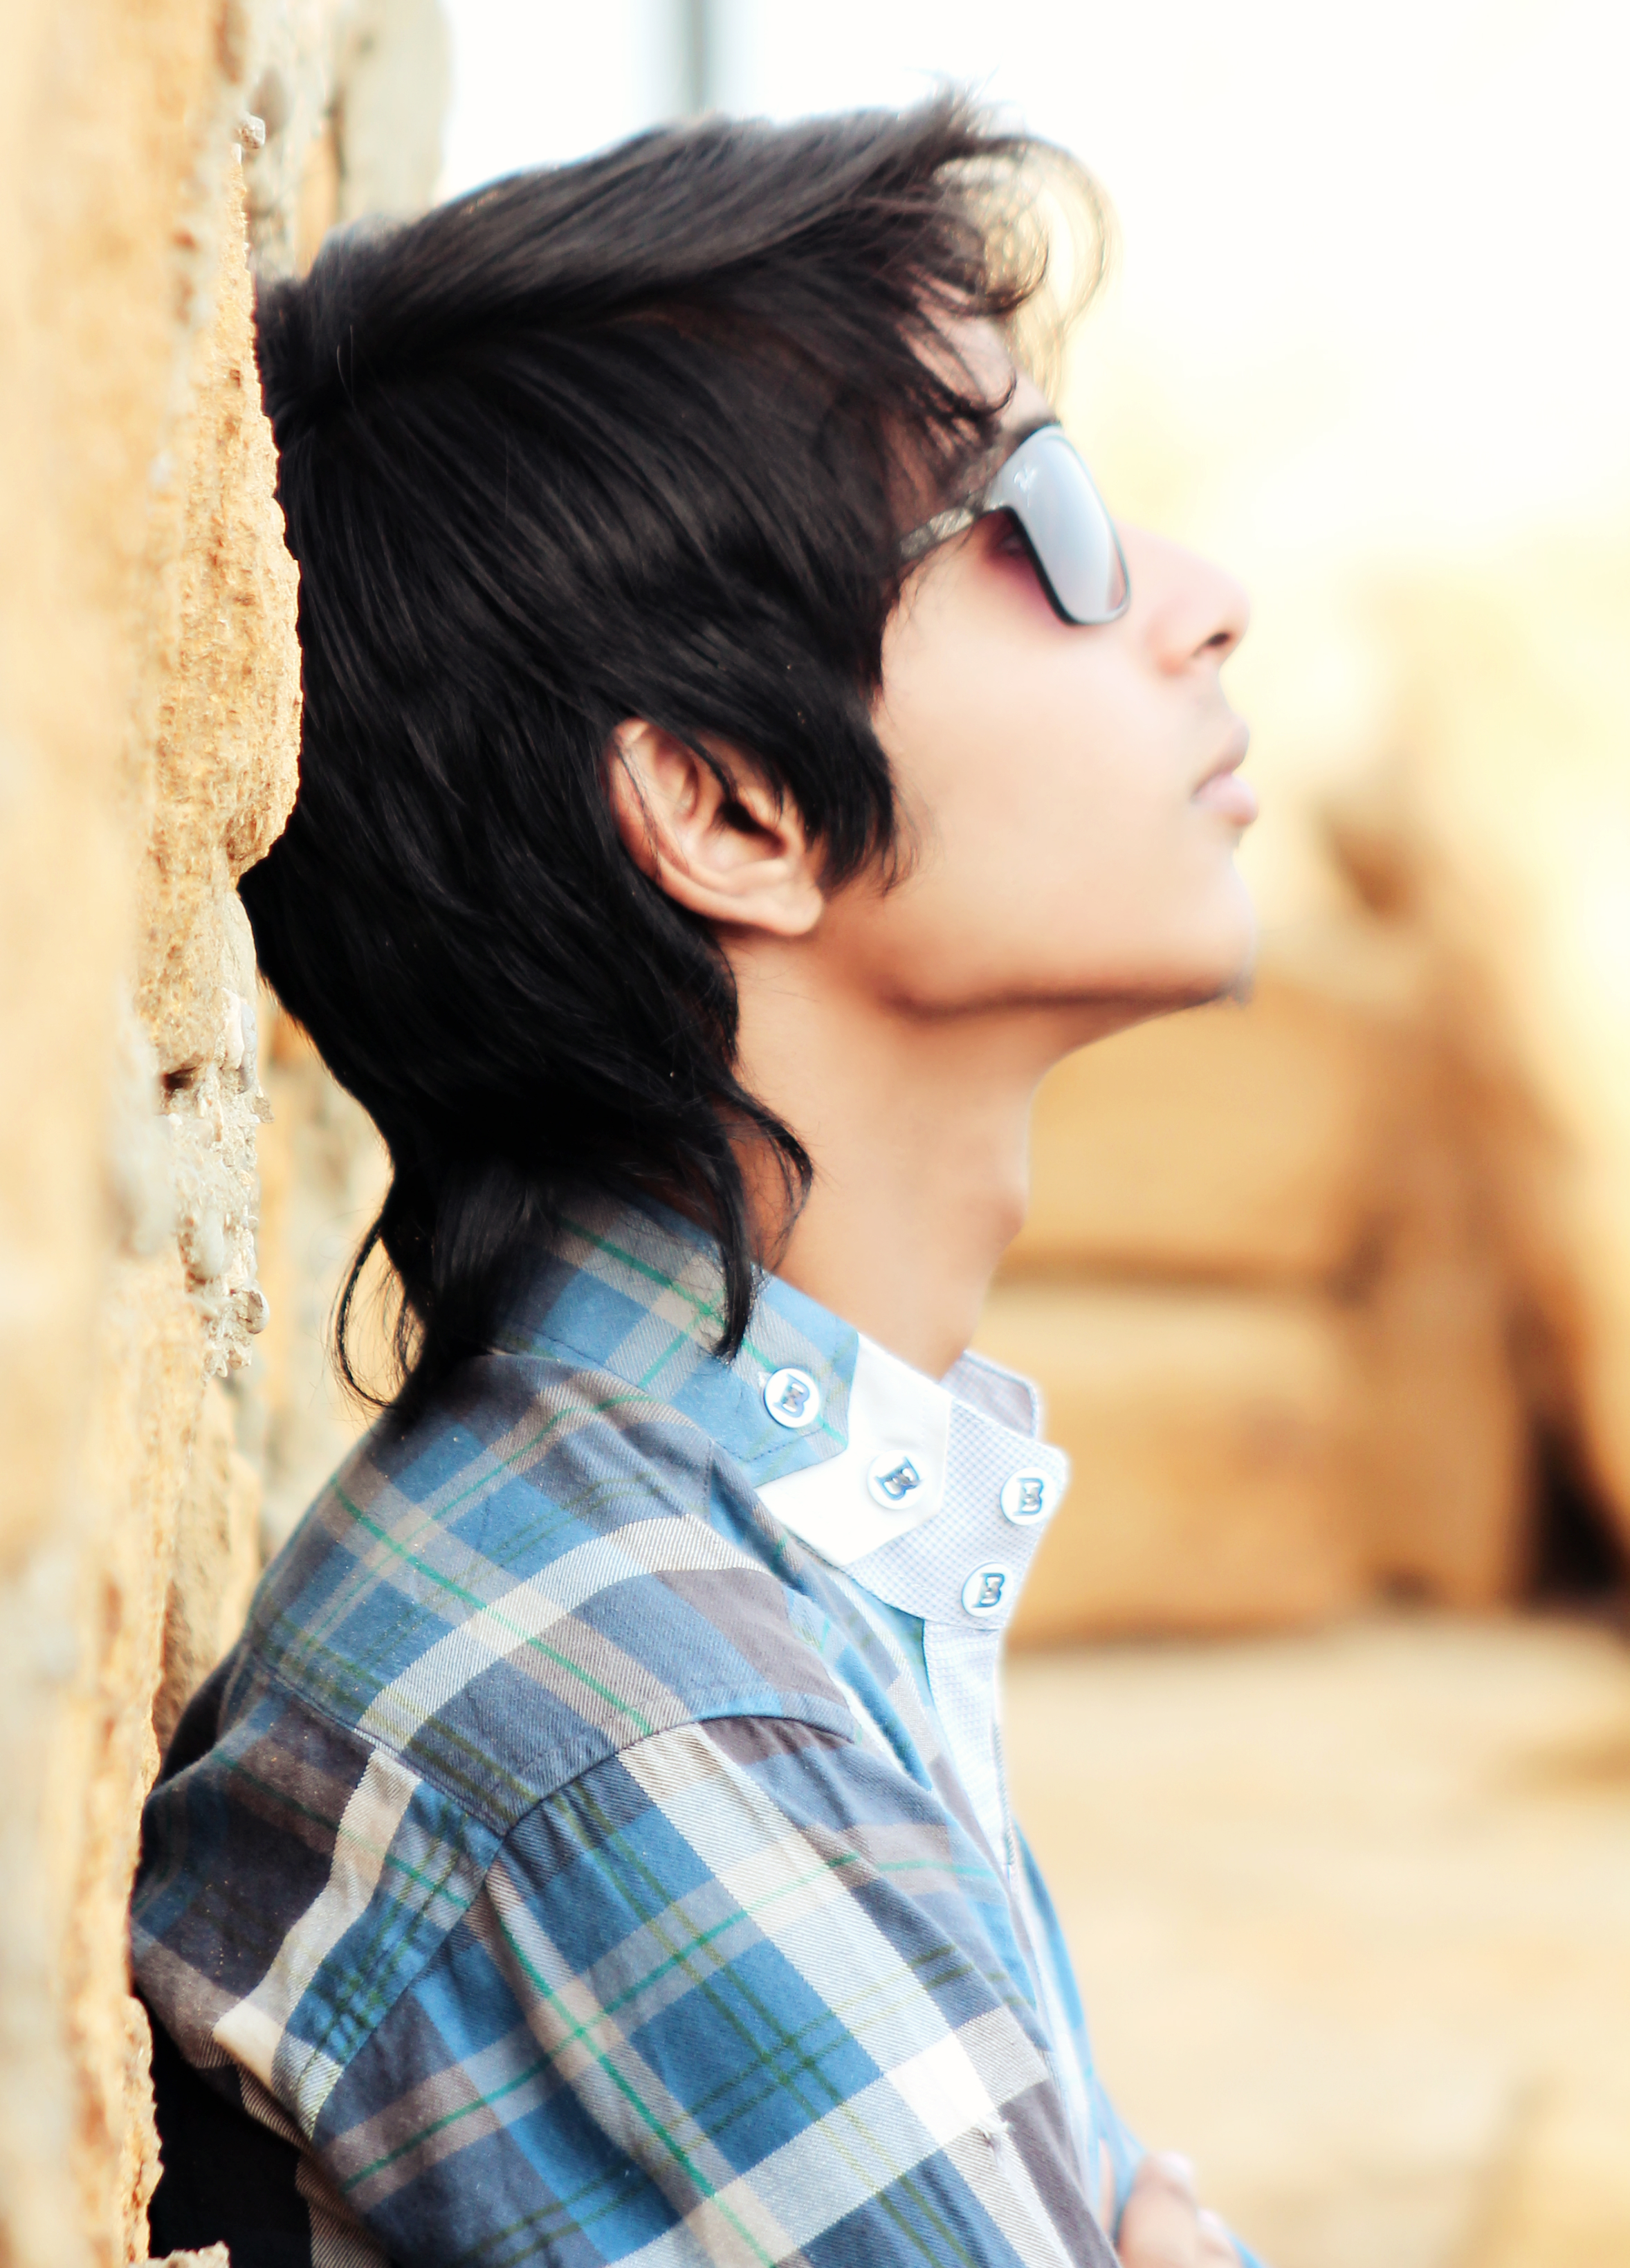 Emo Fashion Images Shazaib Ansari Emo Boy Hd Wallpaper